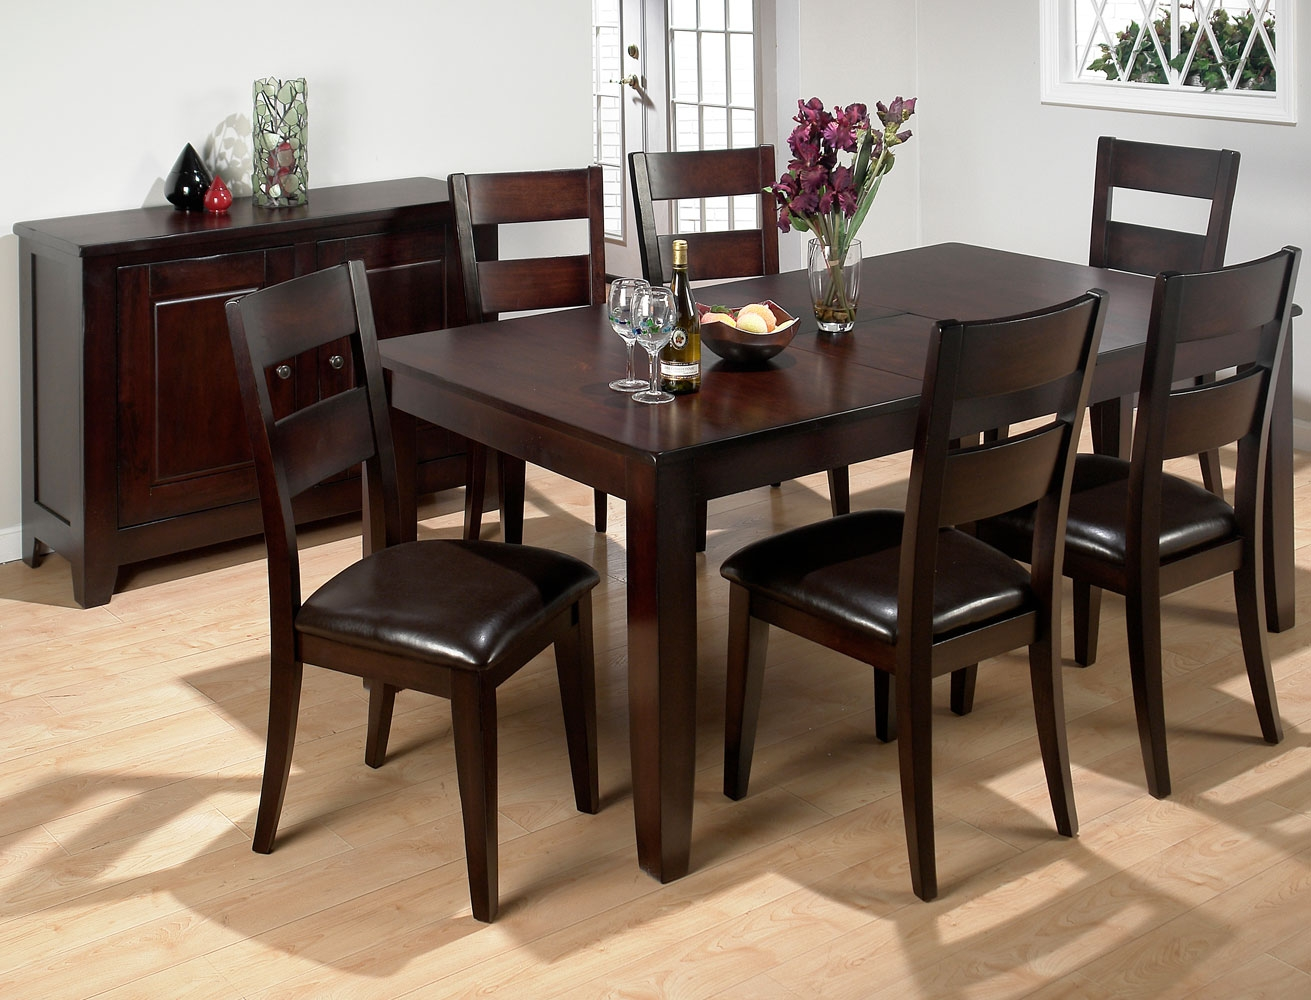 Exquisite Inexpensive Dining Room Sets 18 Cheap Chairs And Macys Layjao